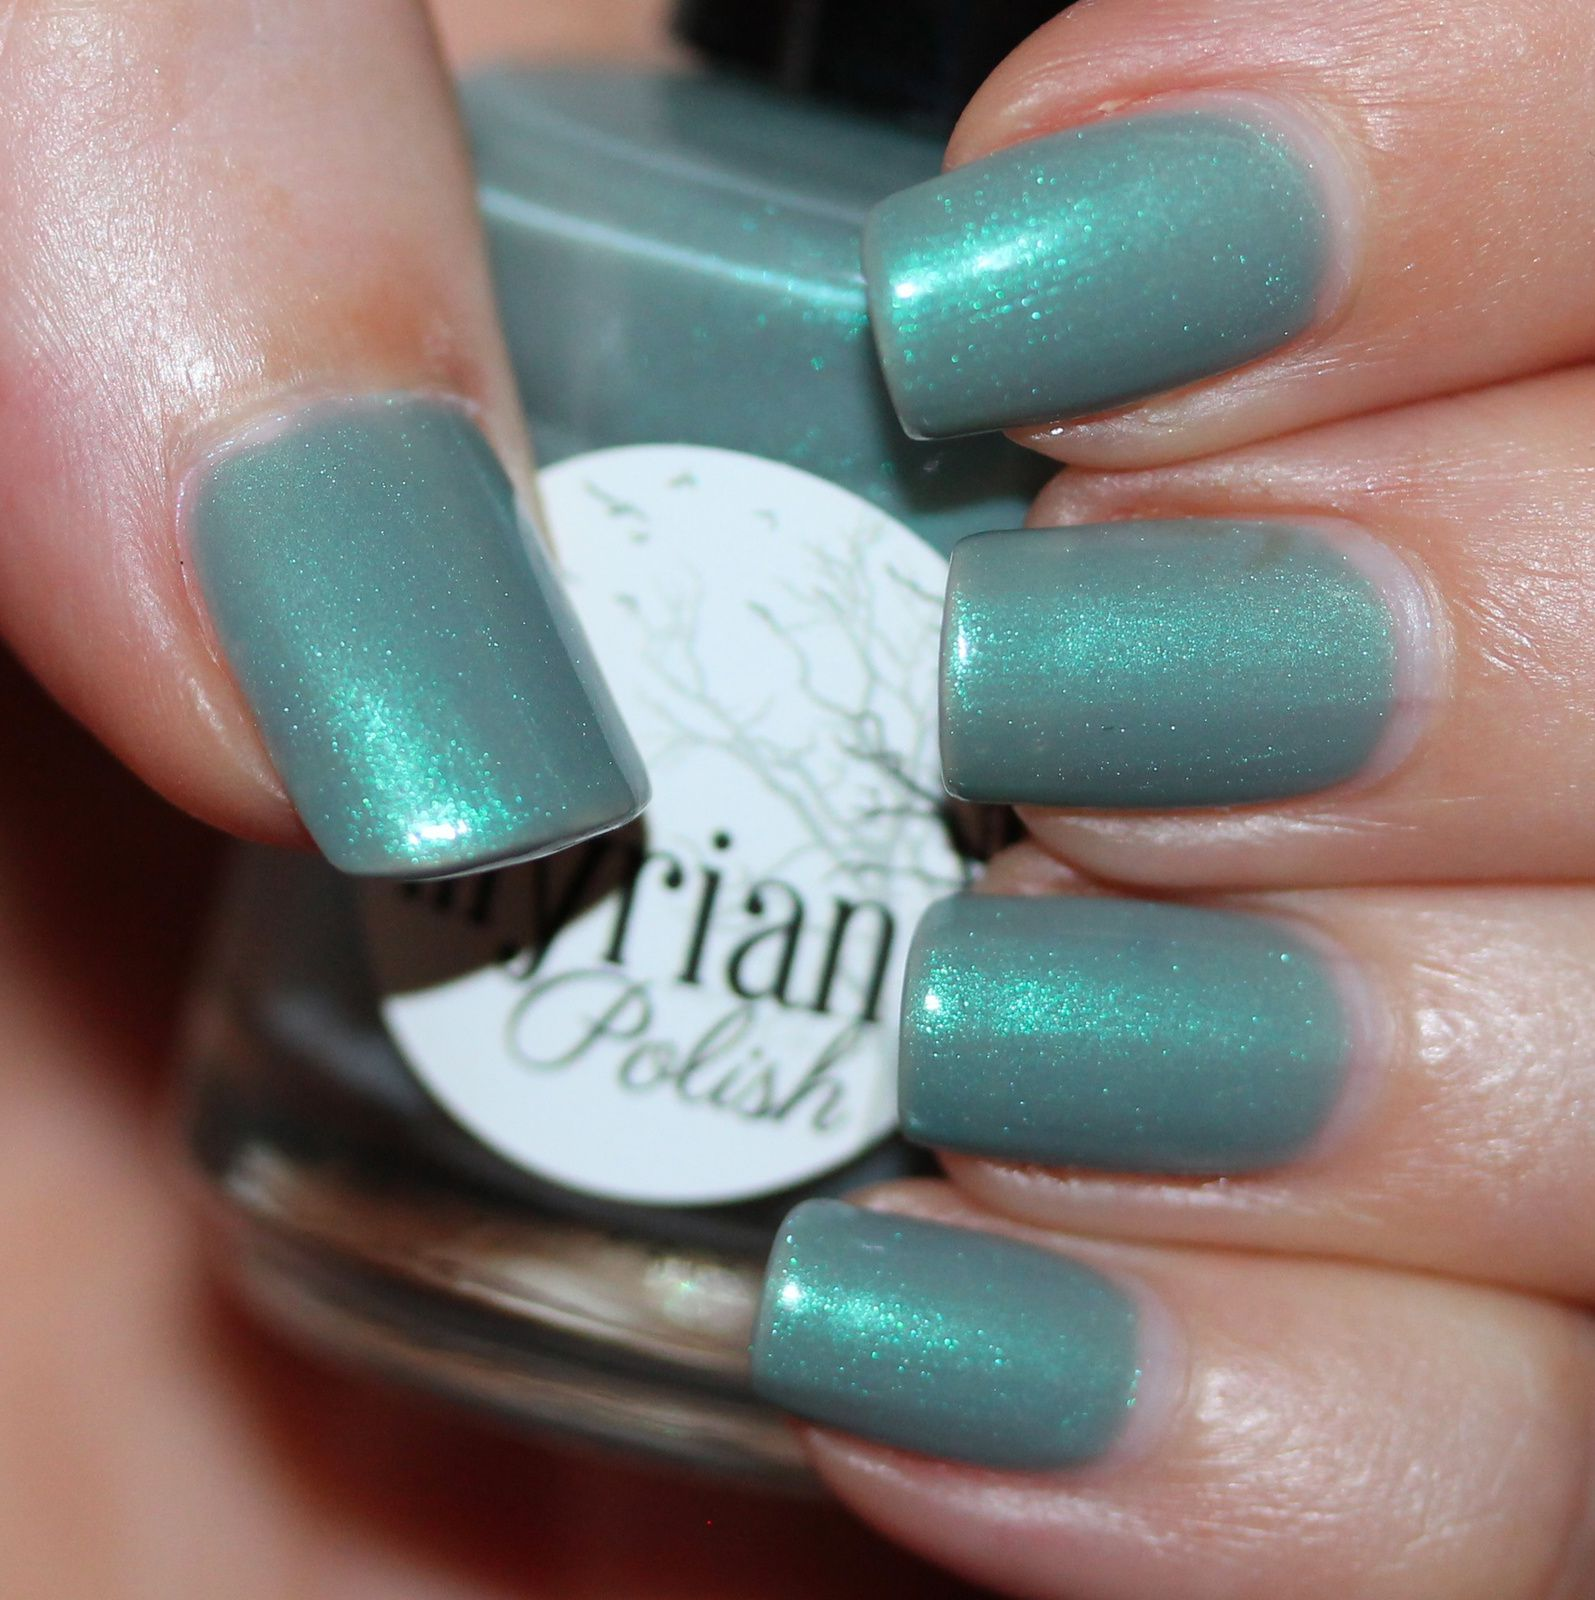 Duri Rejuvacote / Illyrian Polish Our Dreams Seem Not Far Away / Sally Hansen Miracle Gel Top Coat